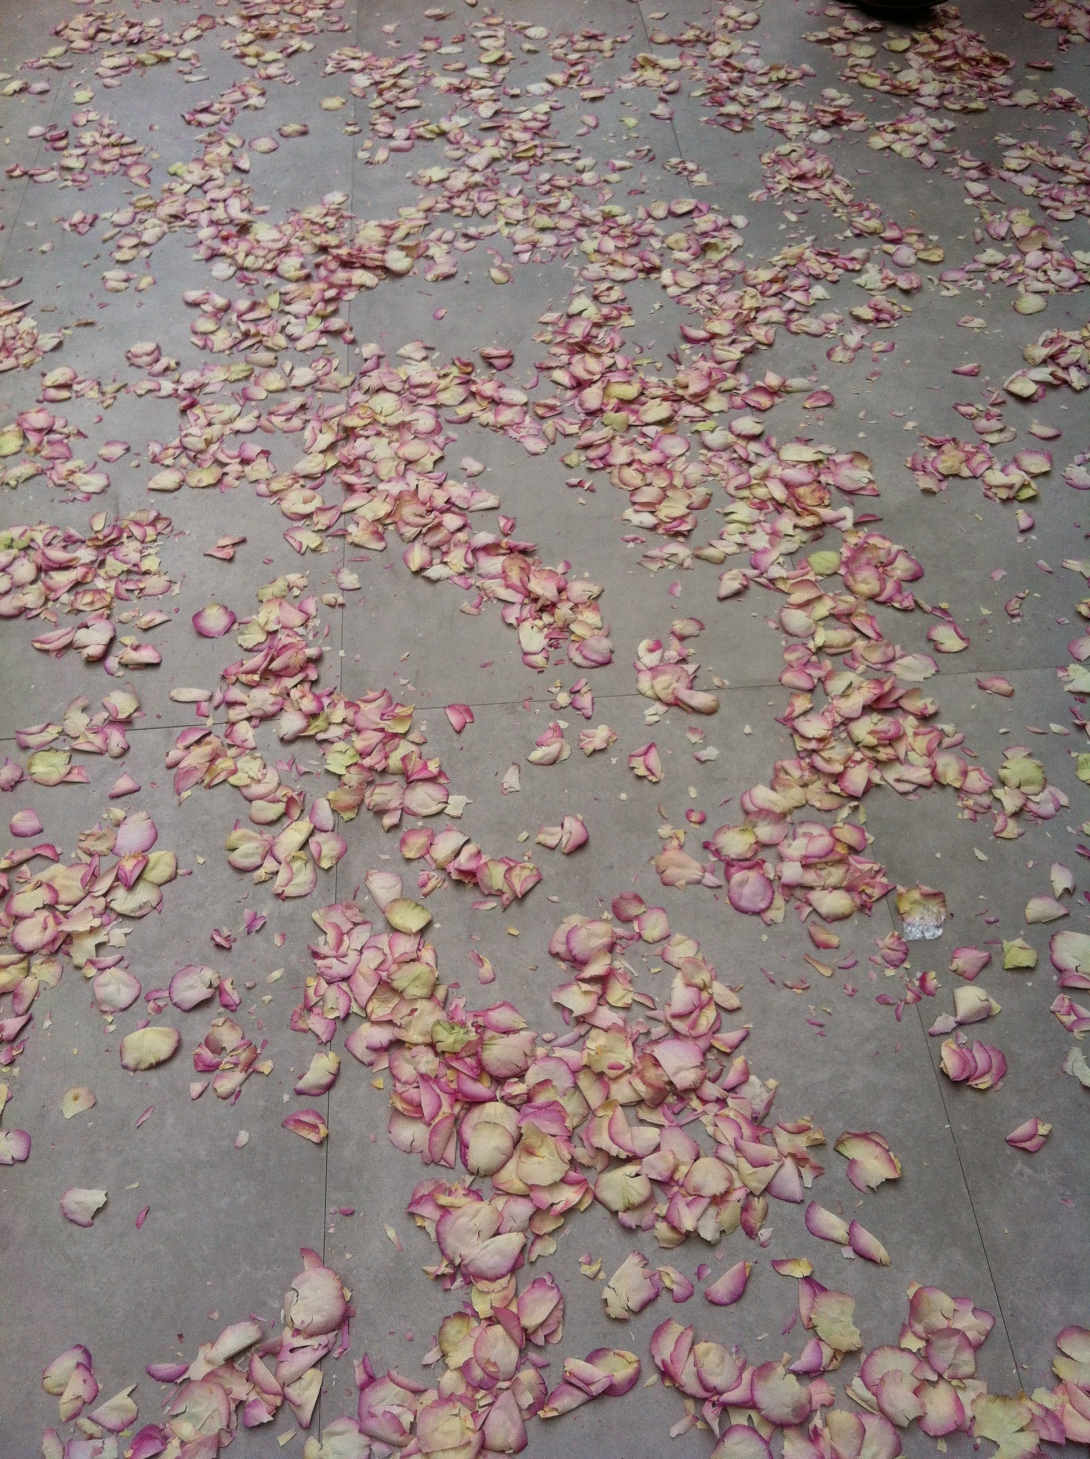 Rose petals after the show